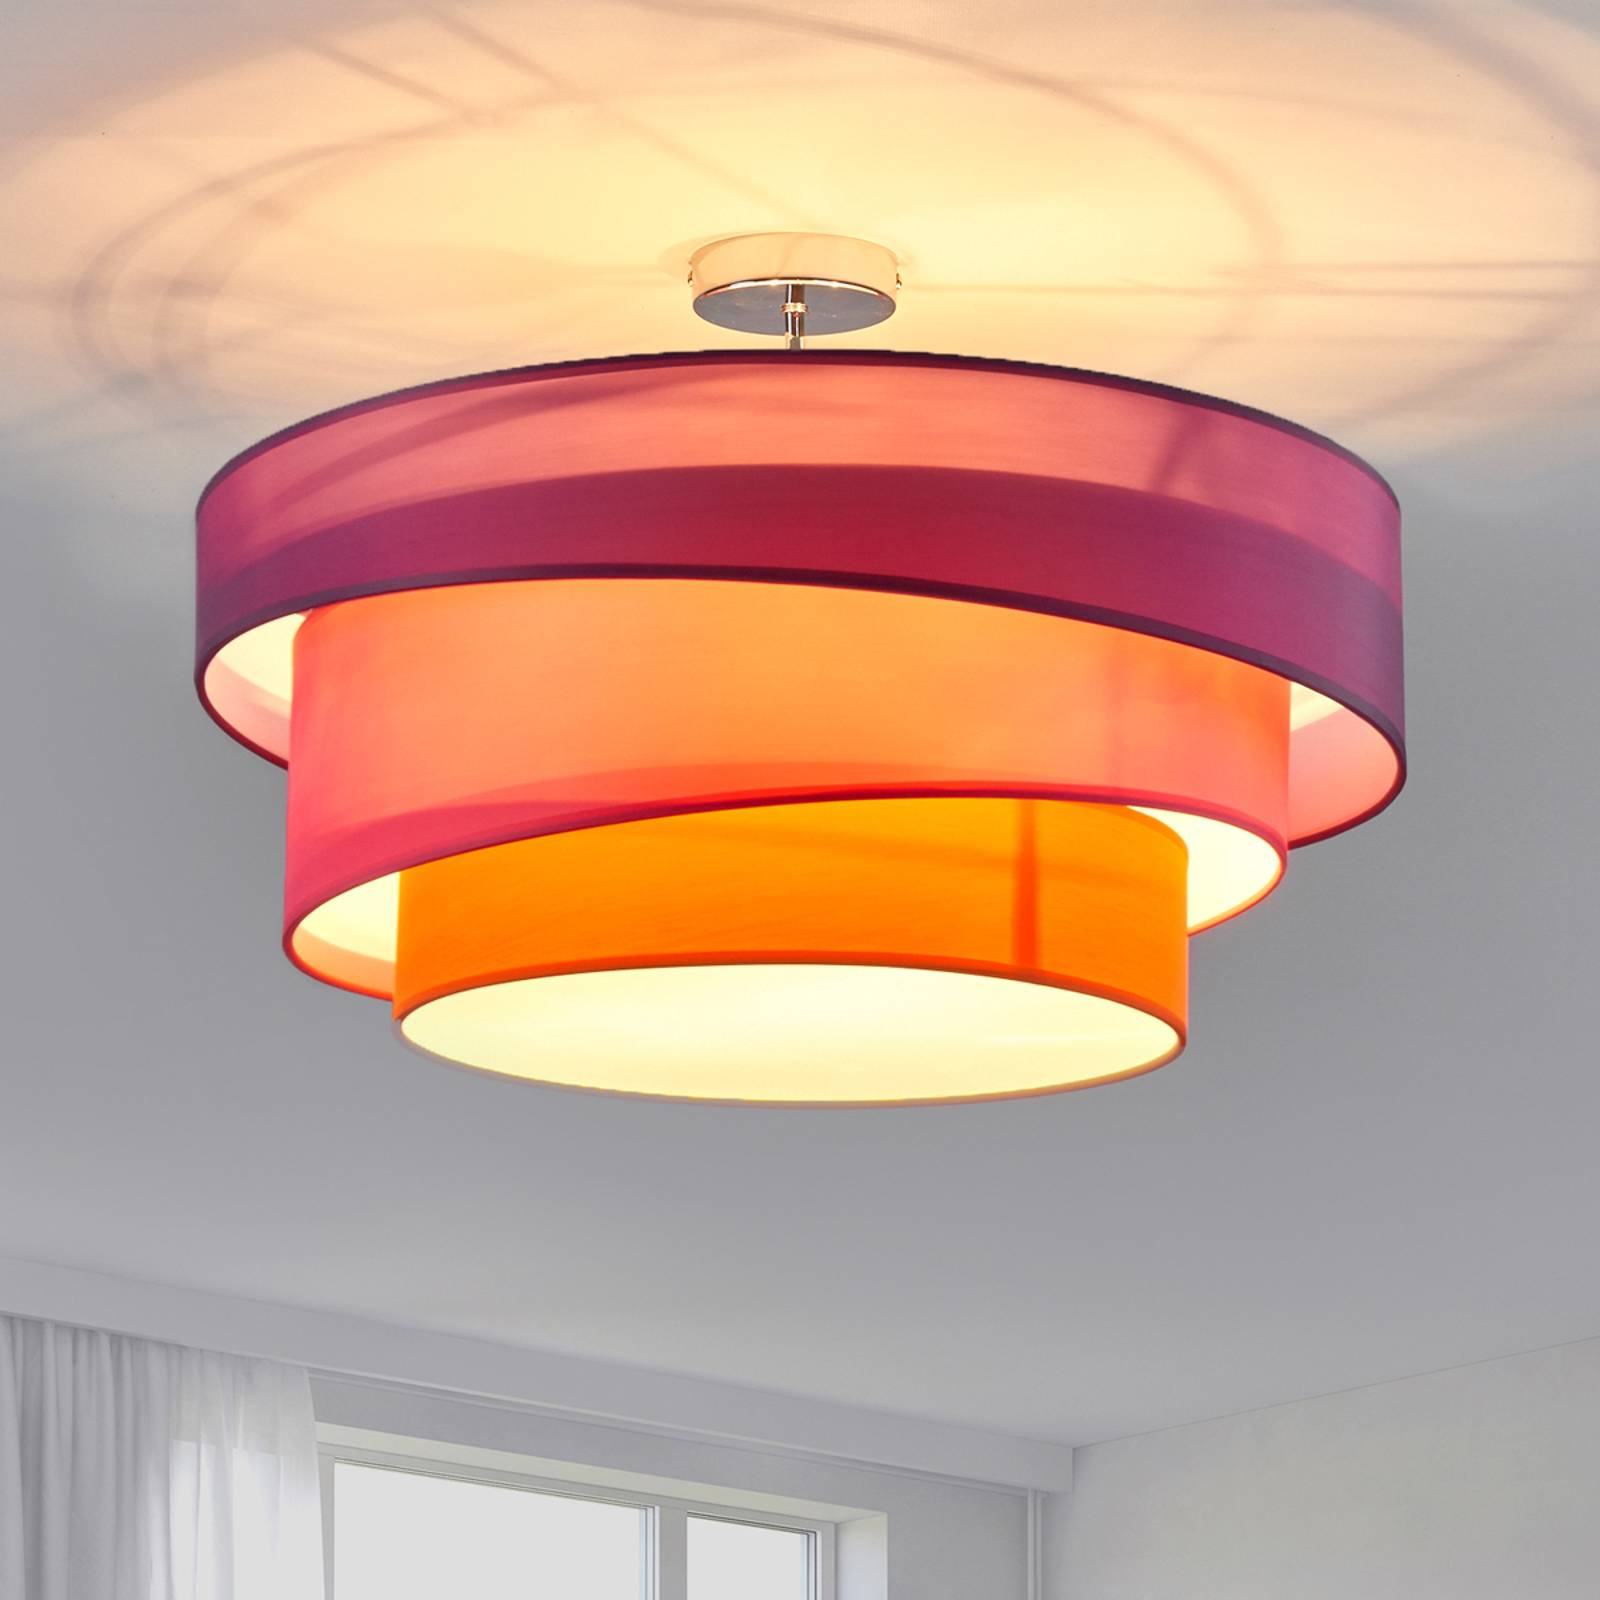 Three-coloured ceiling light Melia, violet & pink from Lindby